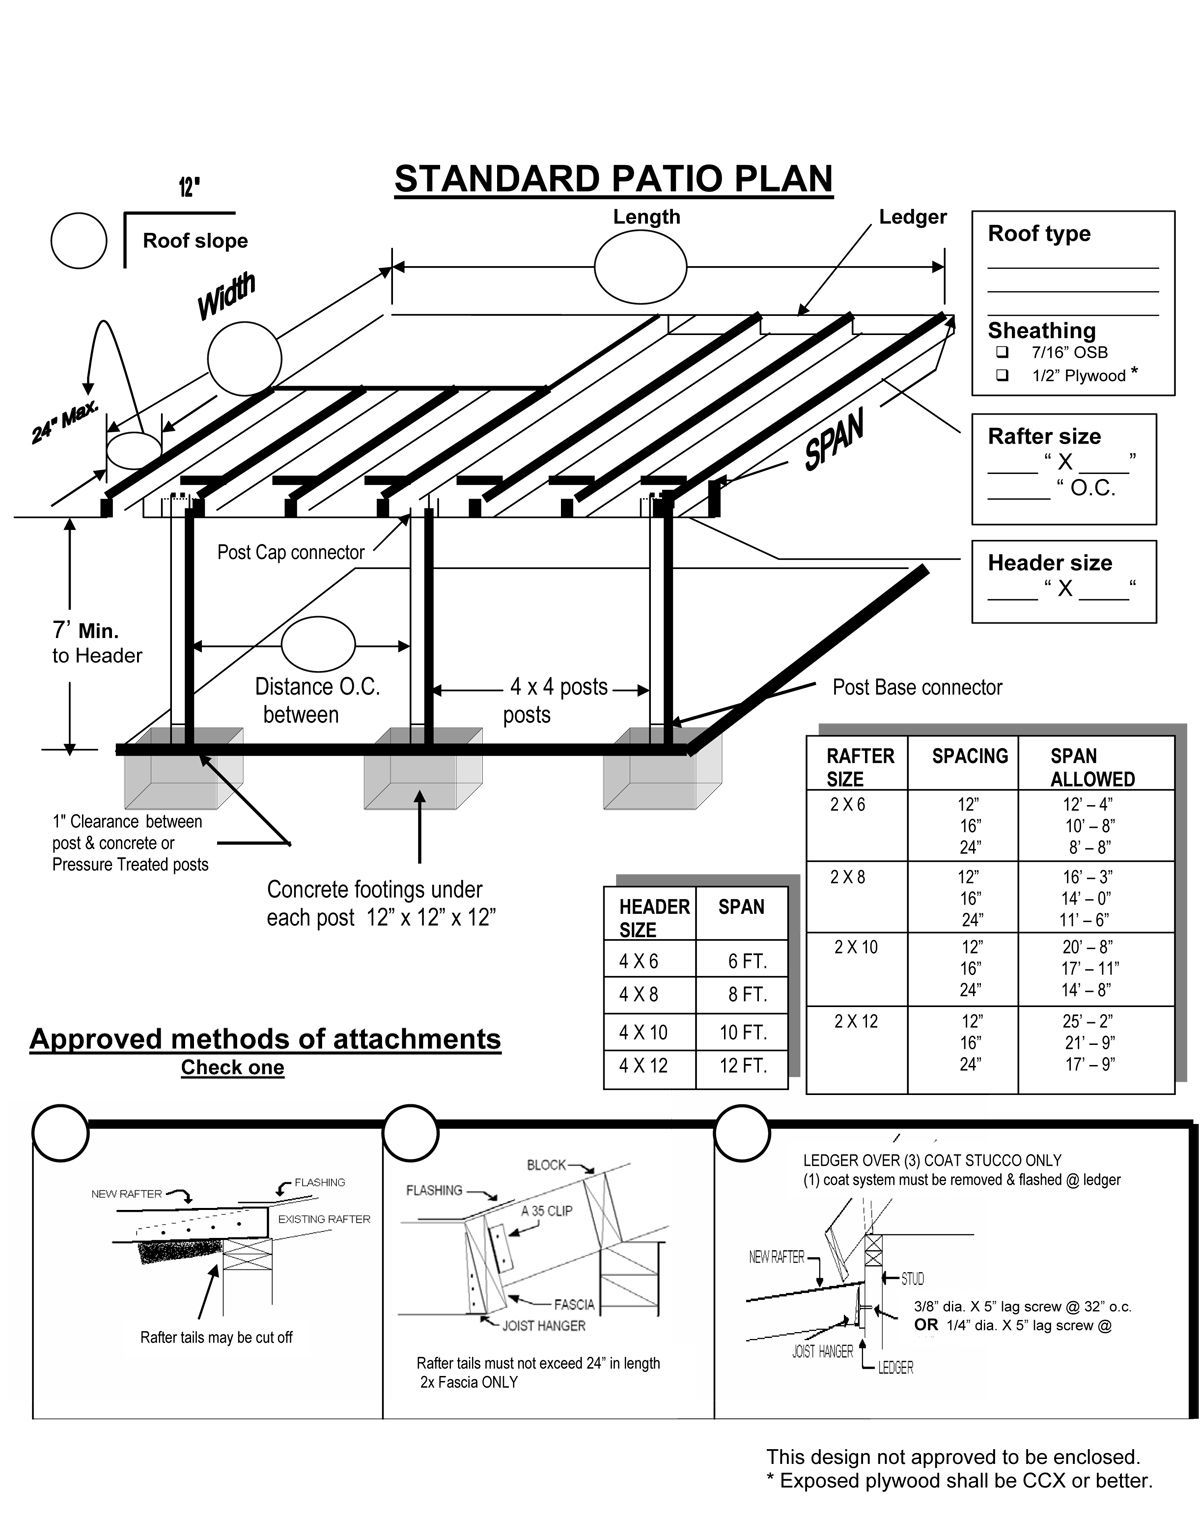 Flat Roof Double Carport Plans Howtospecialist How To Build Step By Step Diy Plans Carport Plans Double Carport Carport Designs